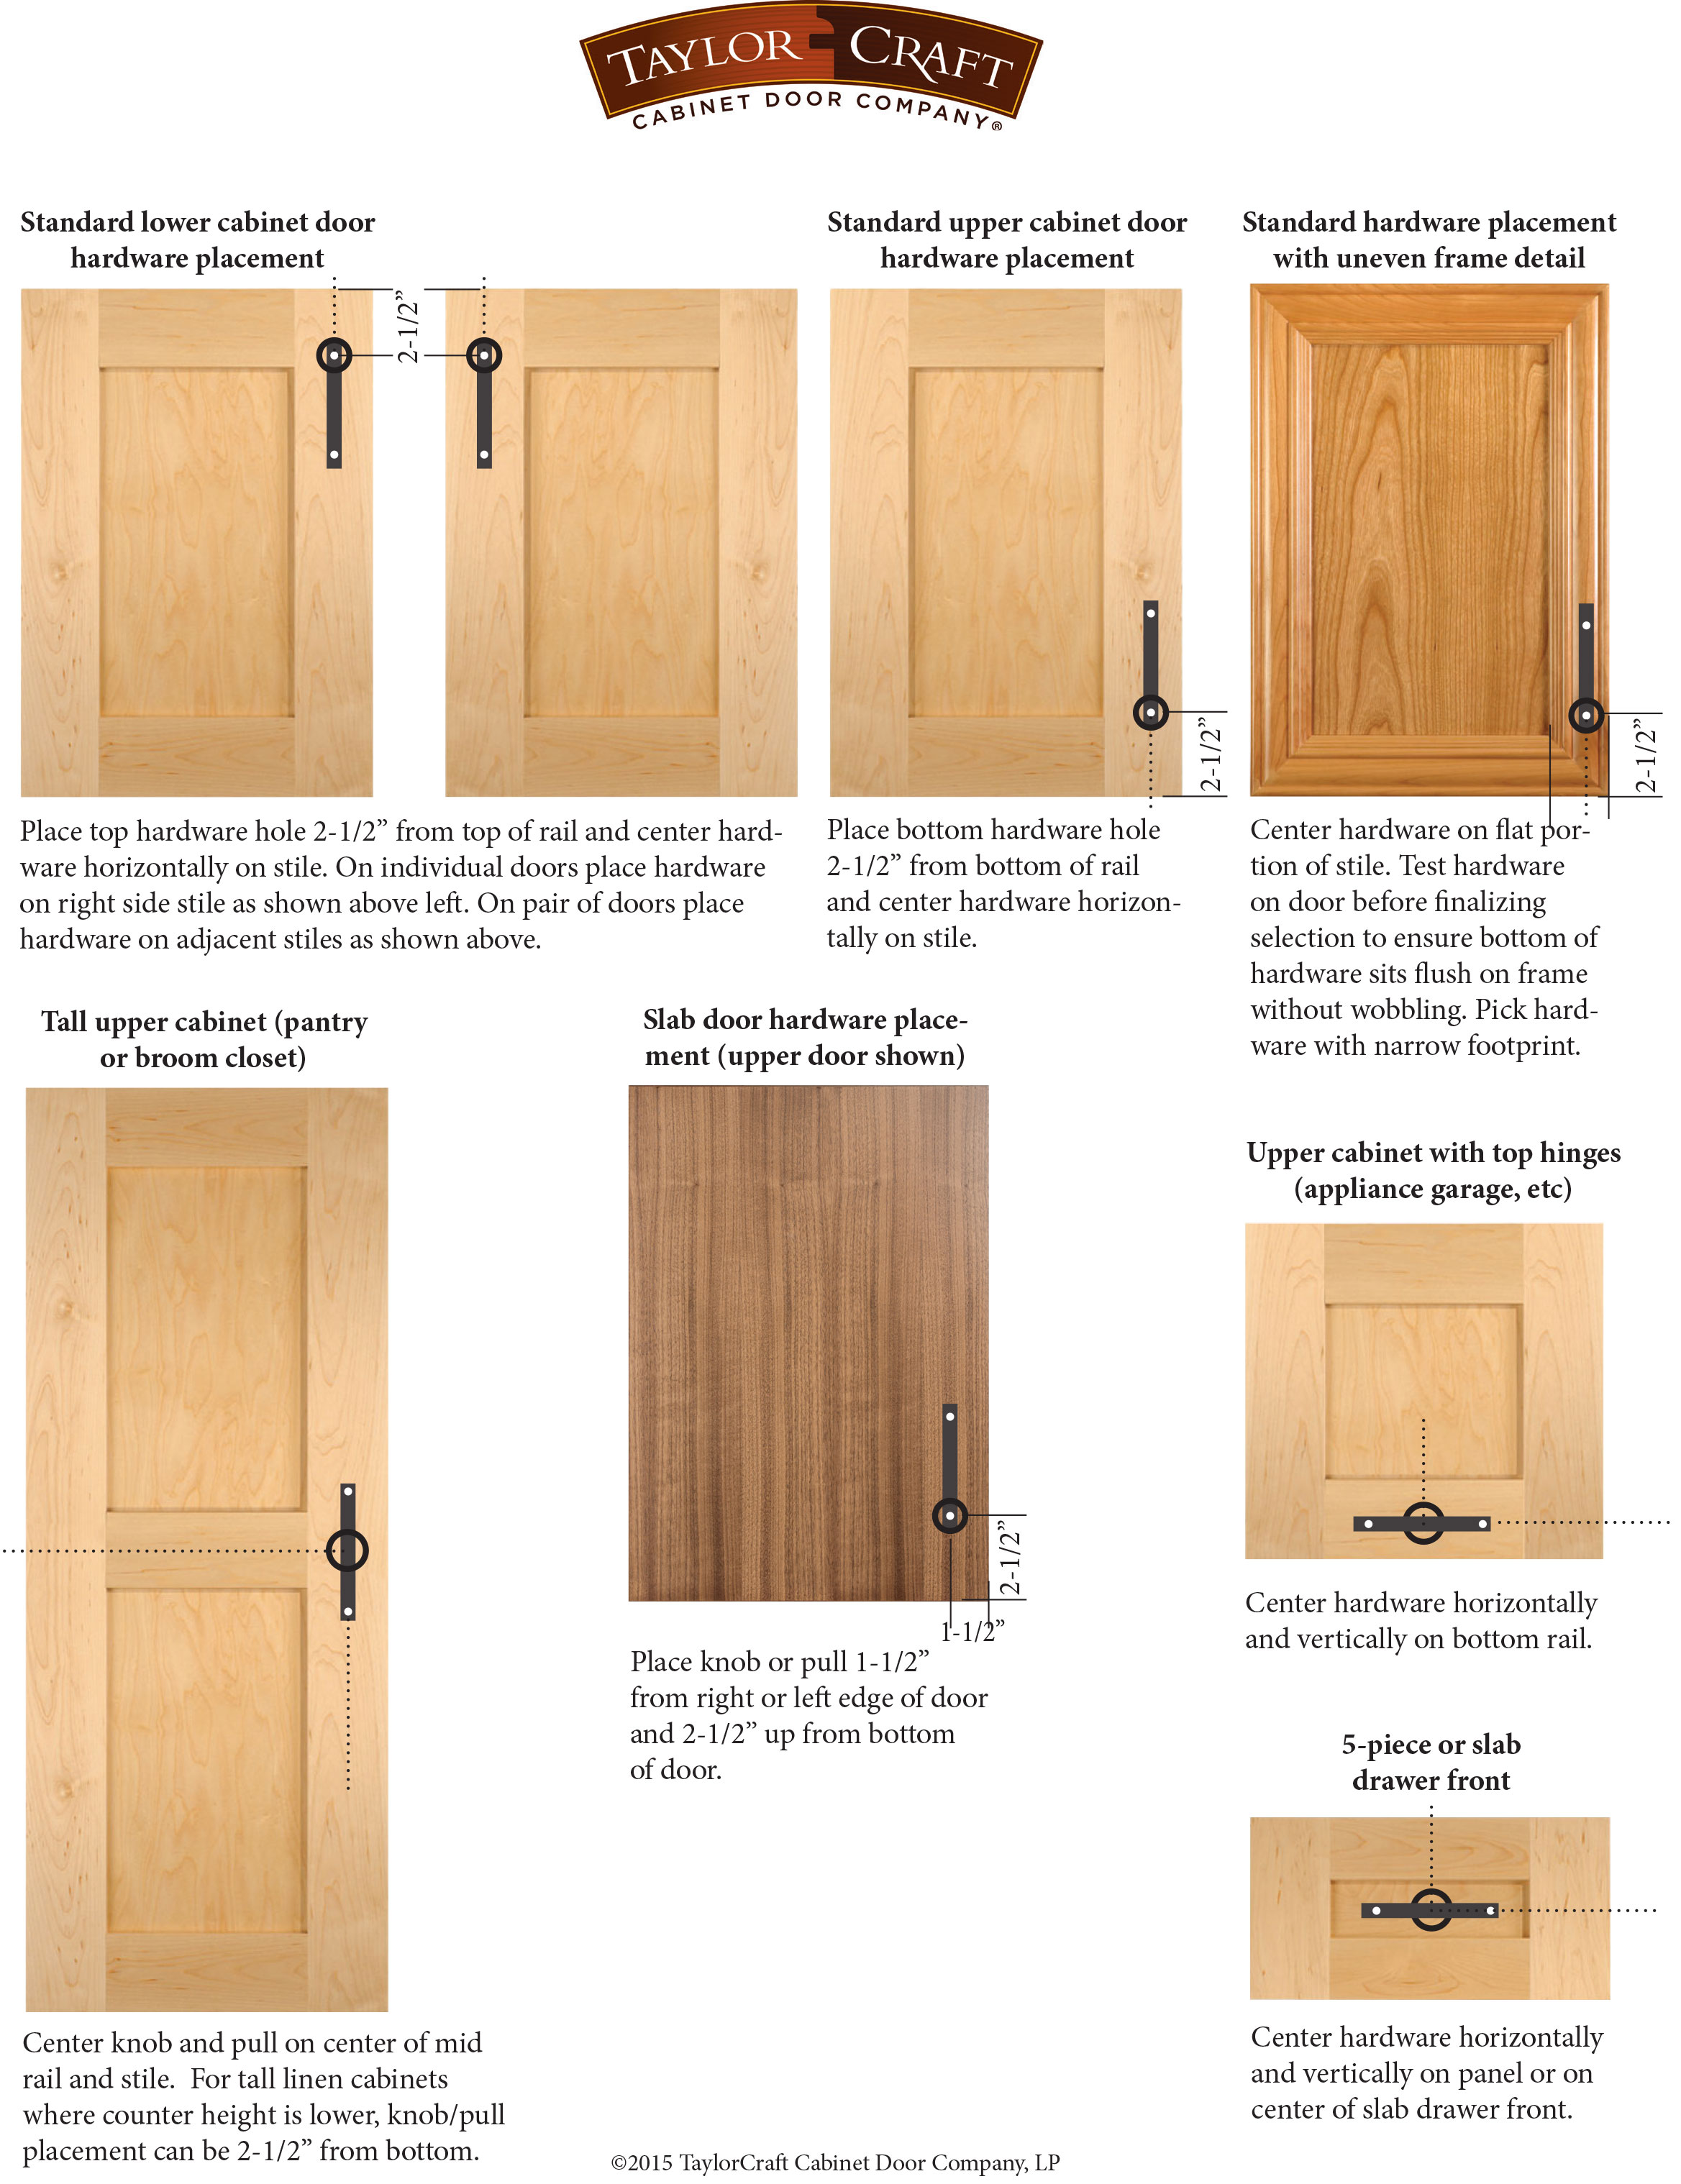 Merveilleux Cabinet Door Hardware Placement Guidelines   TaylorCraft Cabinet Door  Company